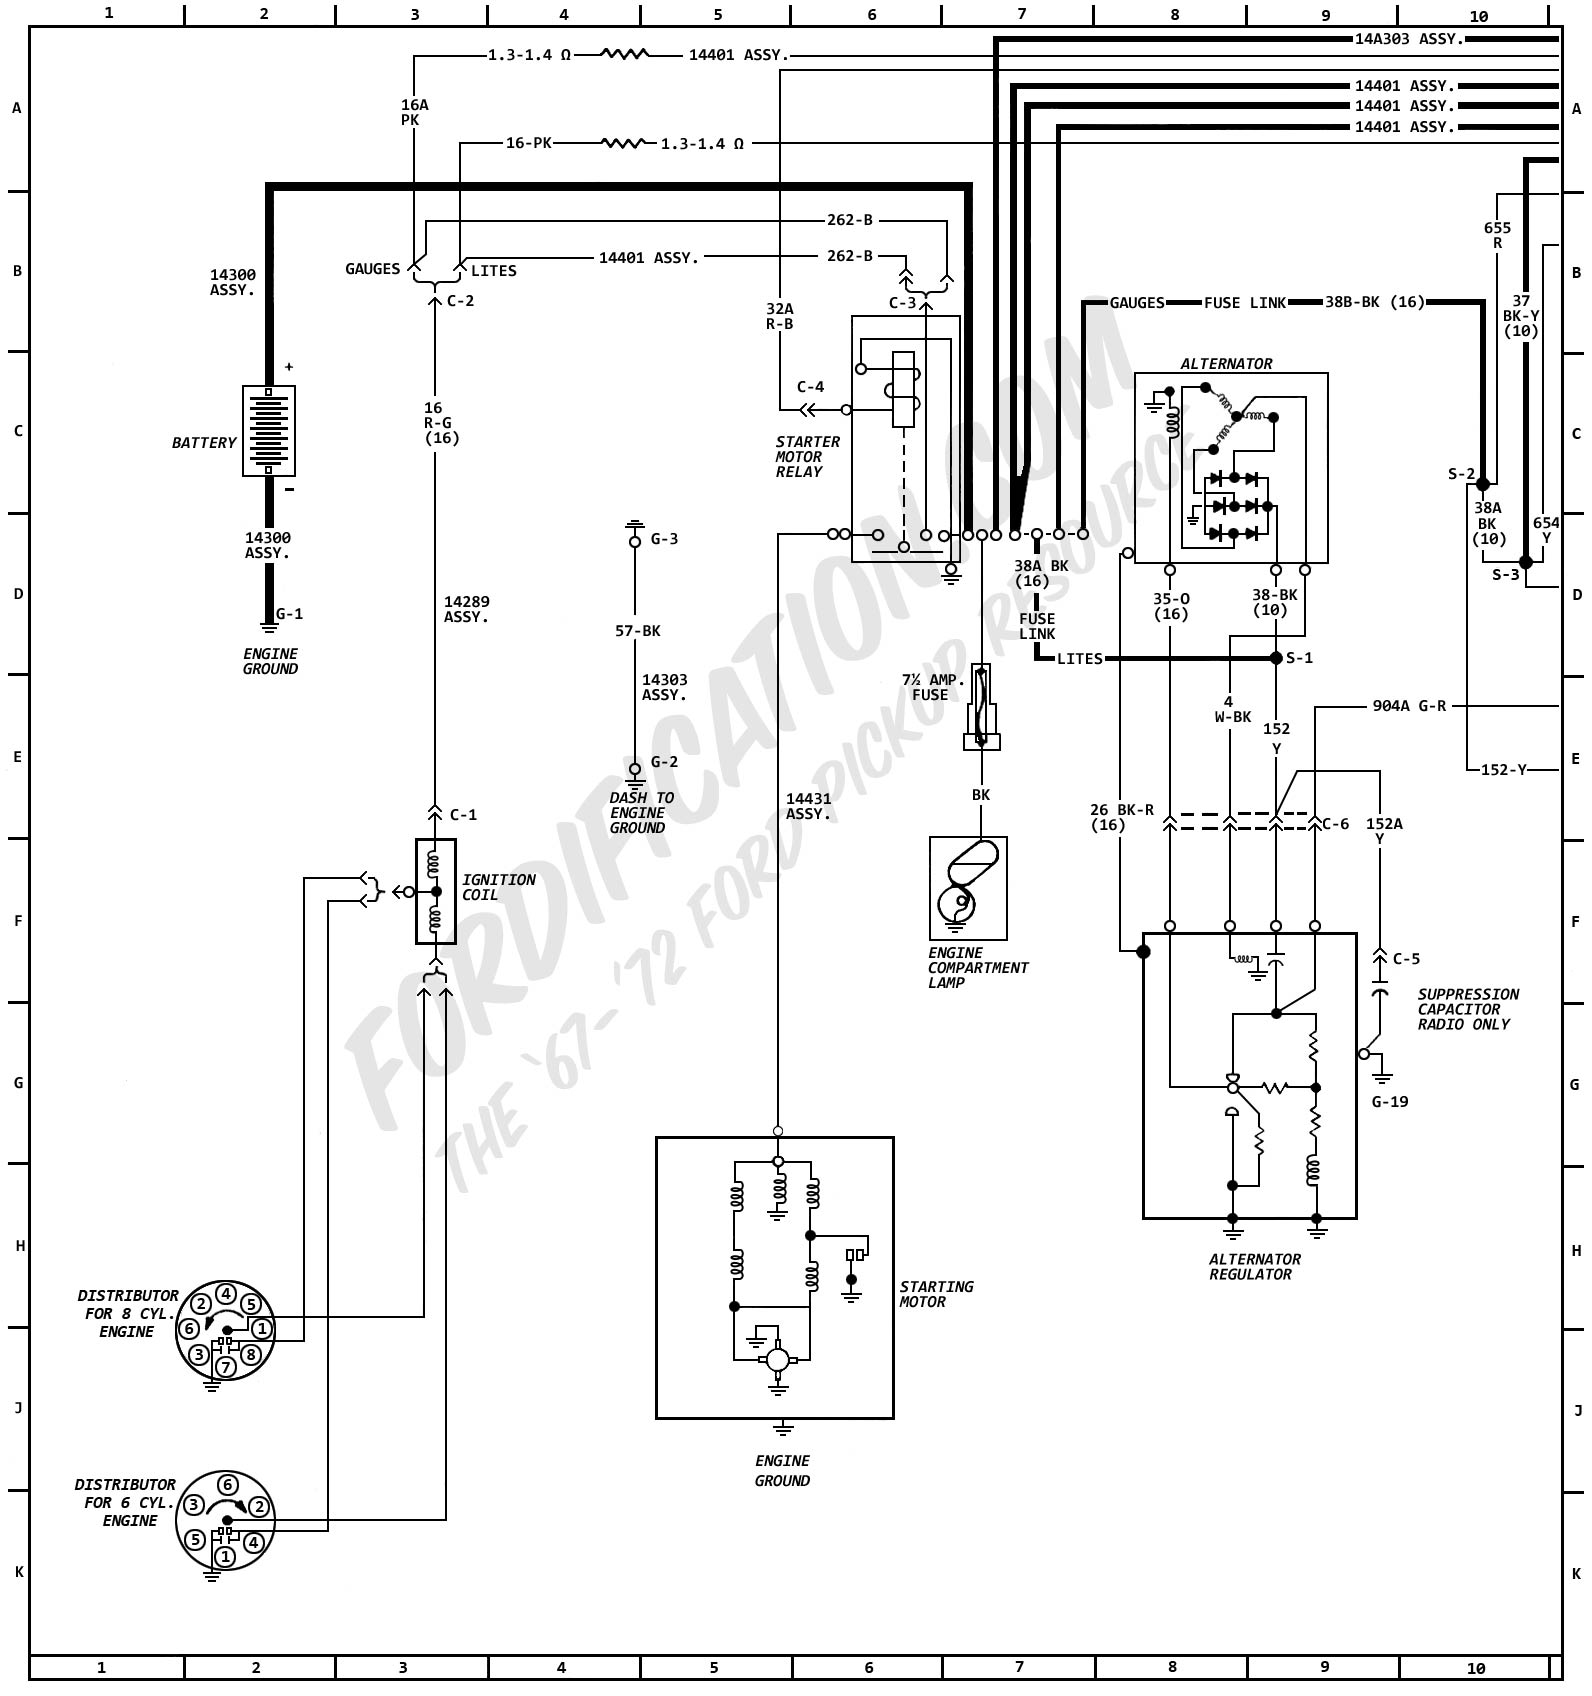 [DIAGRAM_5LK]  1972 Ford Truck Wiring Diagrams - FORDification.com | Ford Ignition Switch Wiring |  | FORDification.com